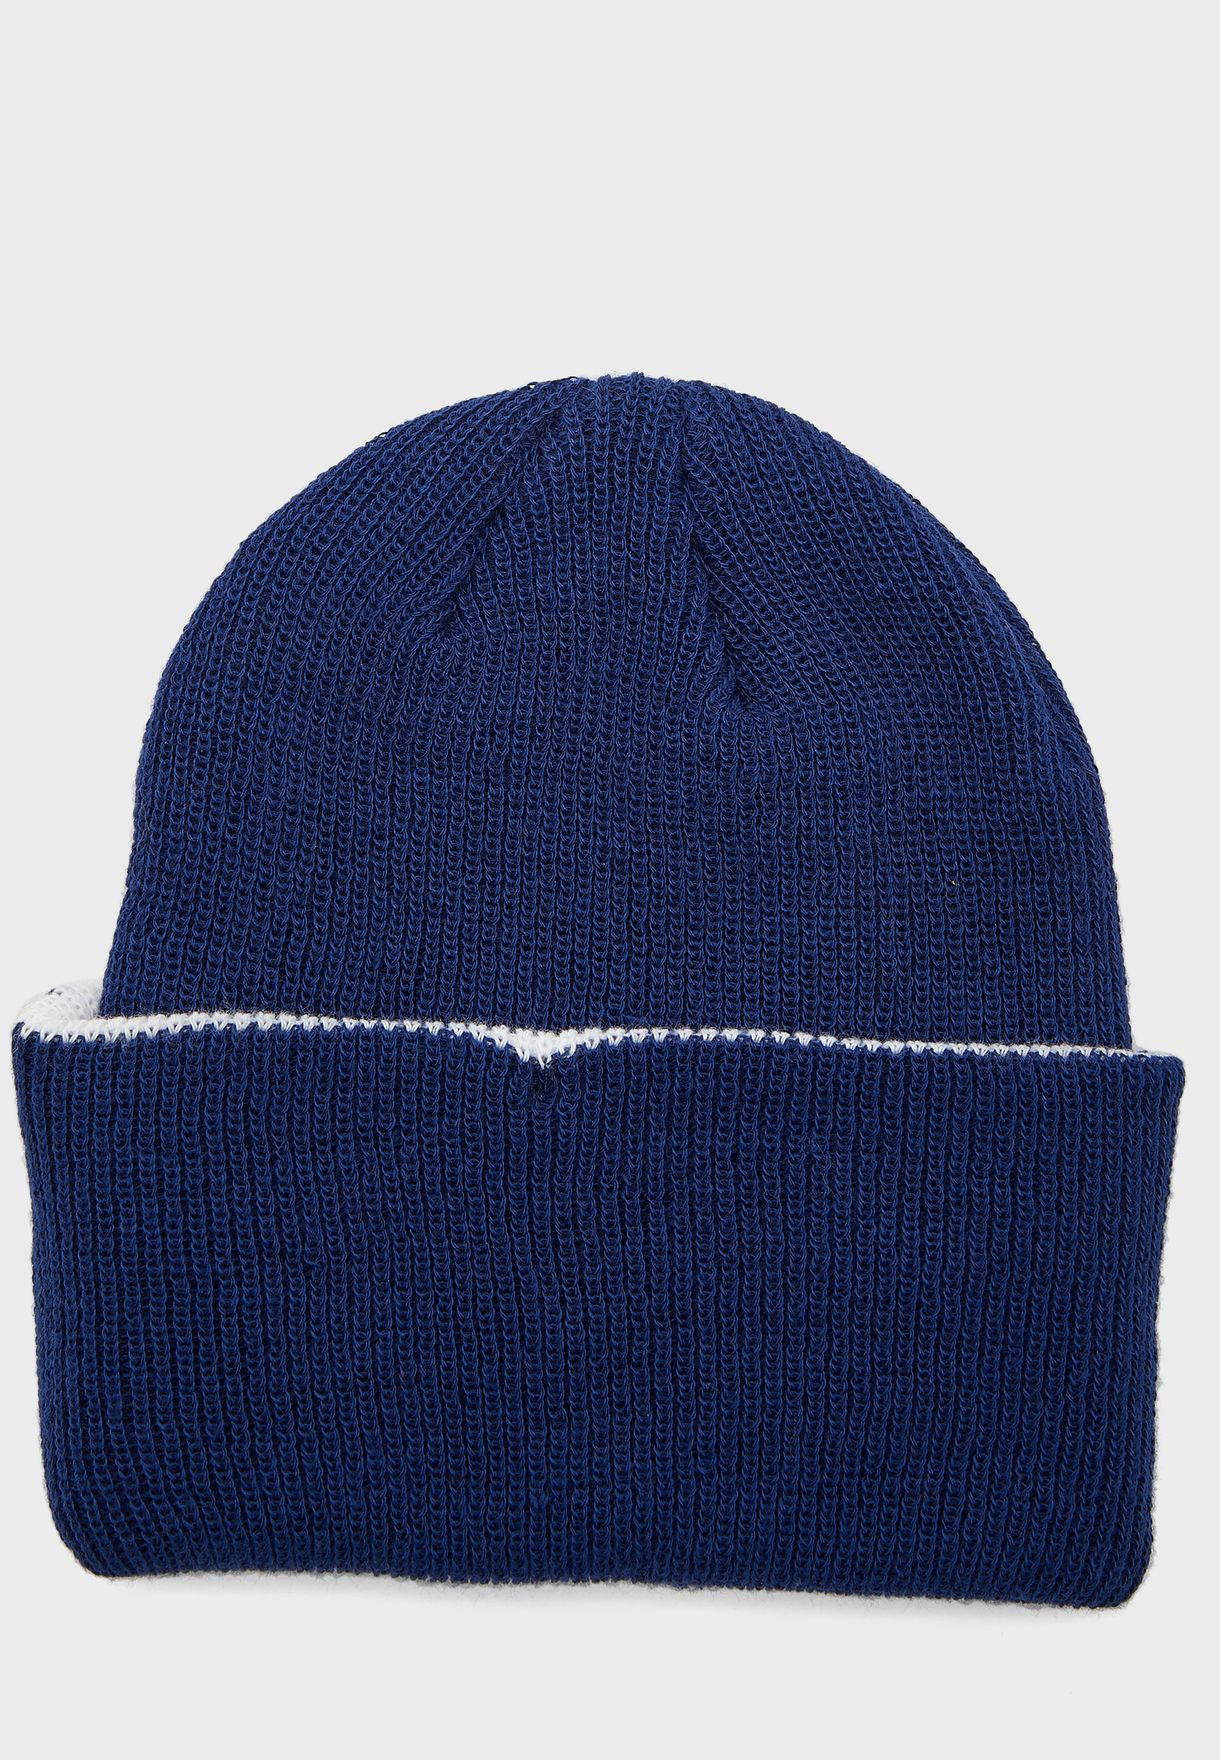 NSW 3In1 Cuffed Beanie